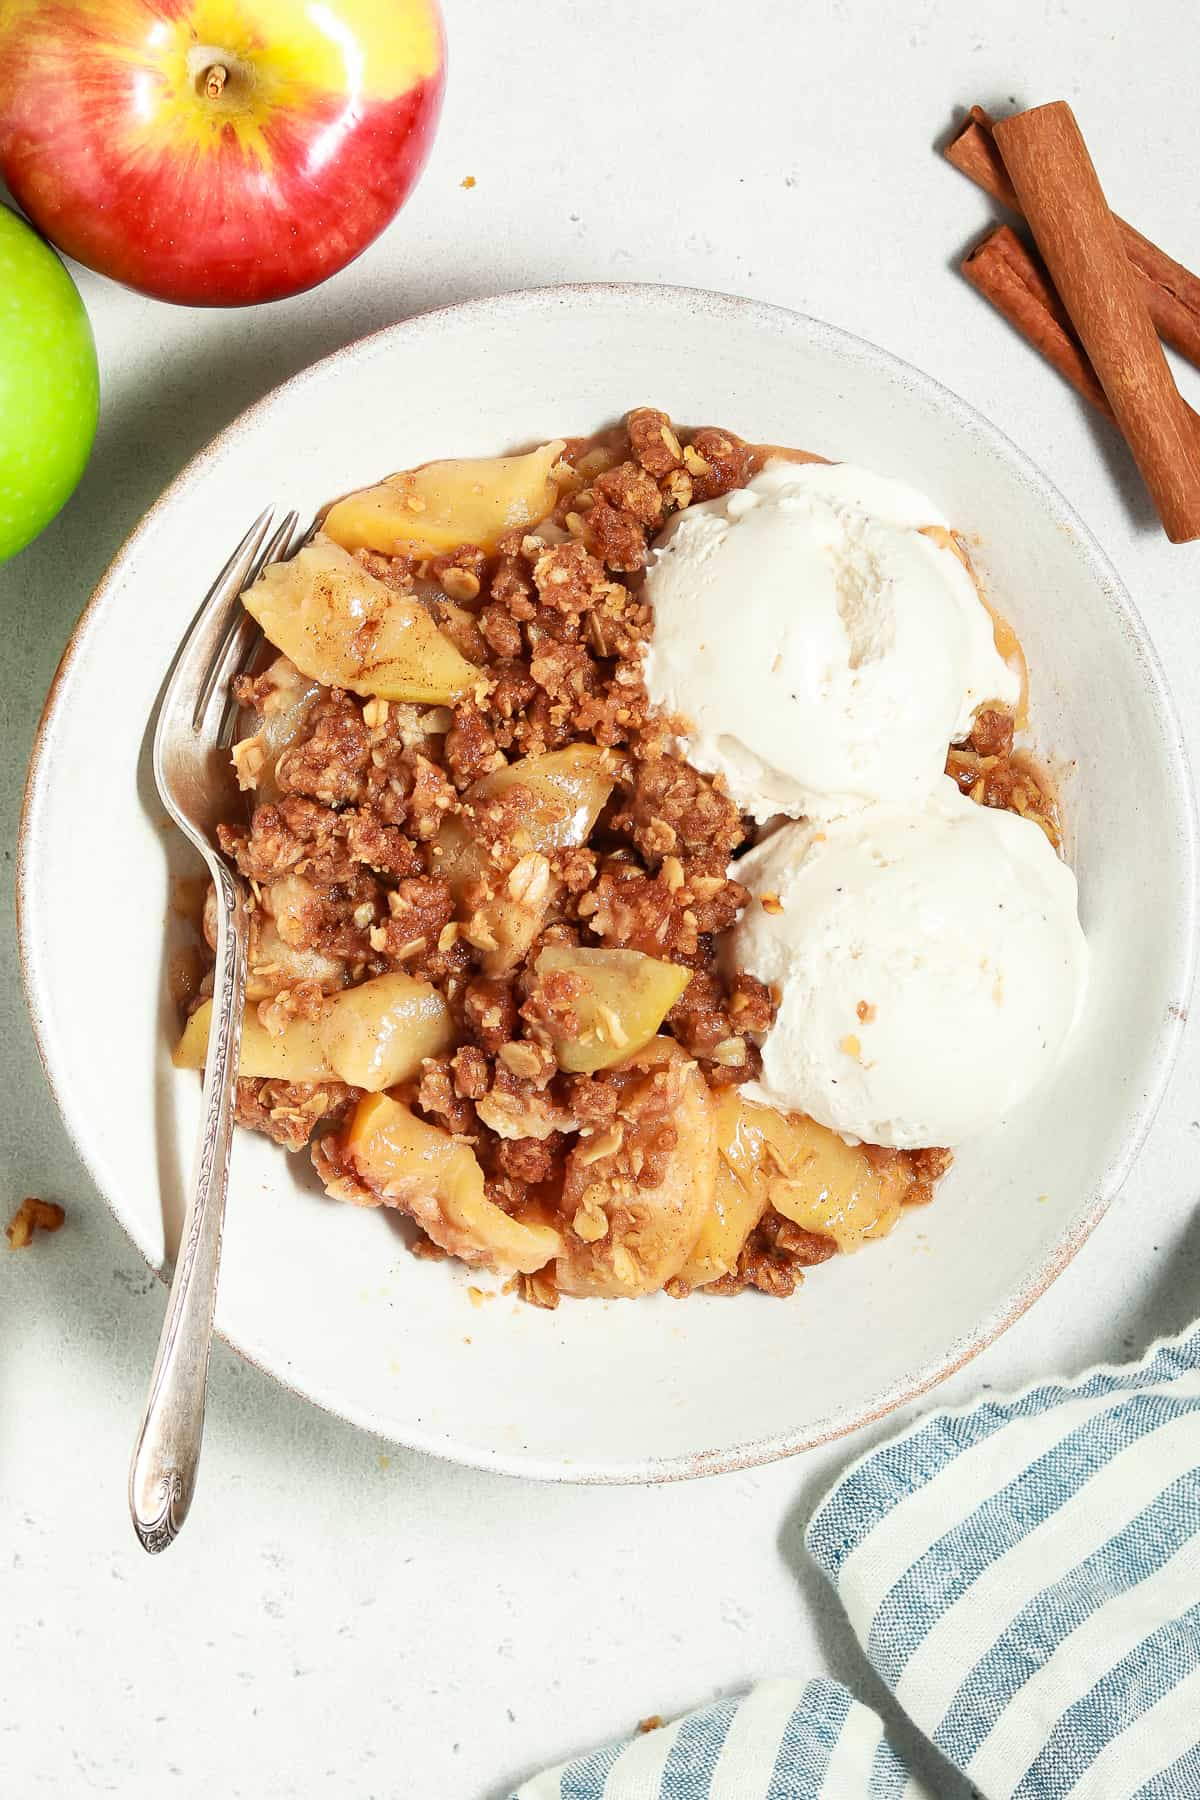 Overhead view of vegan apple crisp in a white bowl with vanilla ice cream on the side.